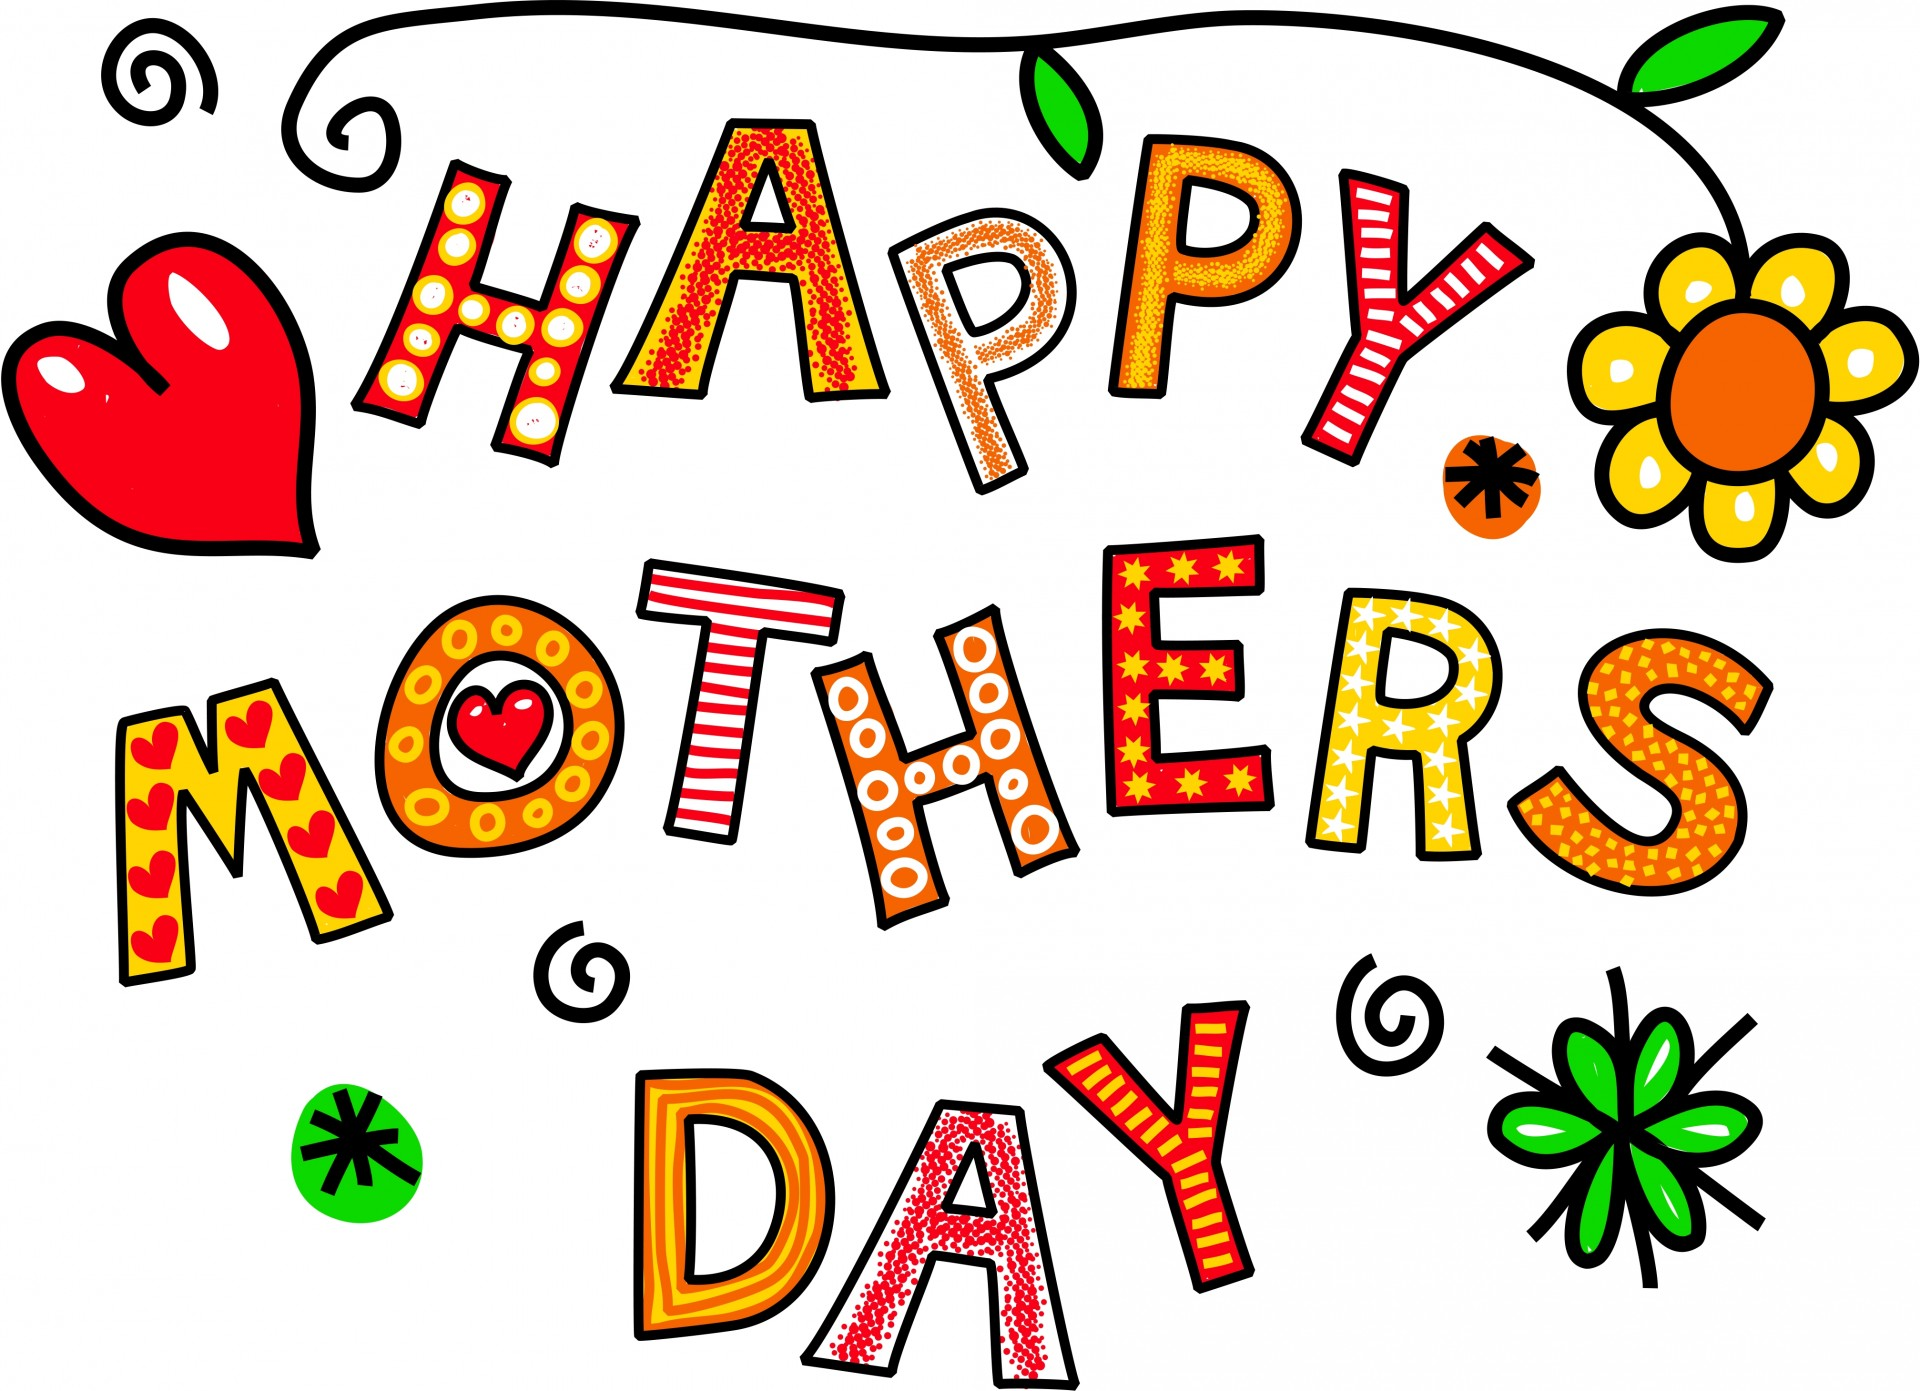 Free stock photo public. 2016 clipart happy mothers day vector royalty free download